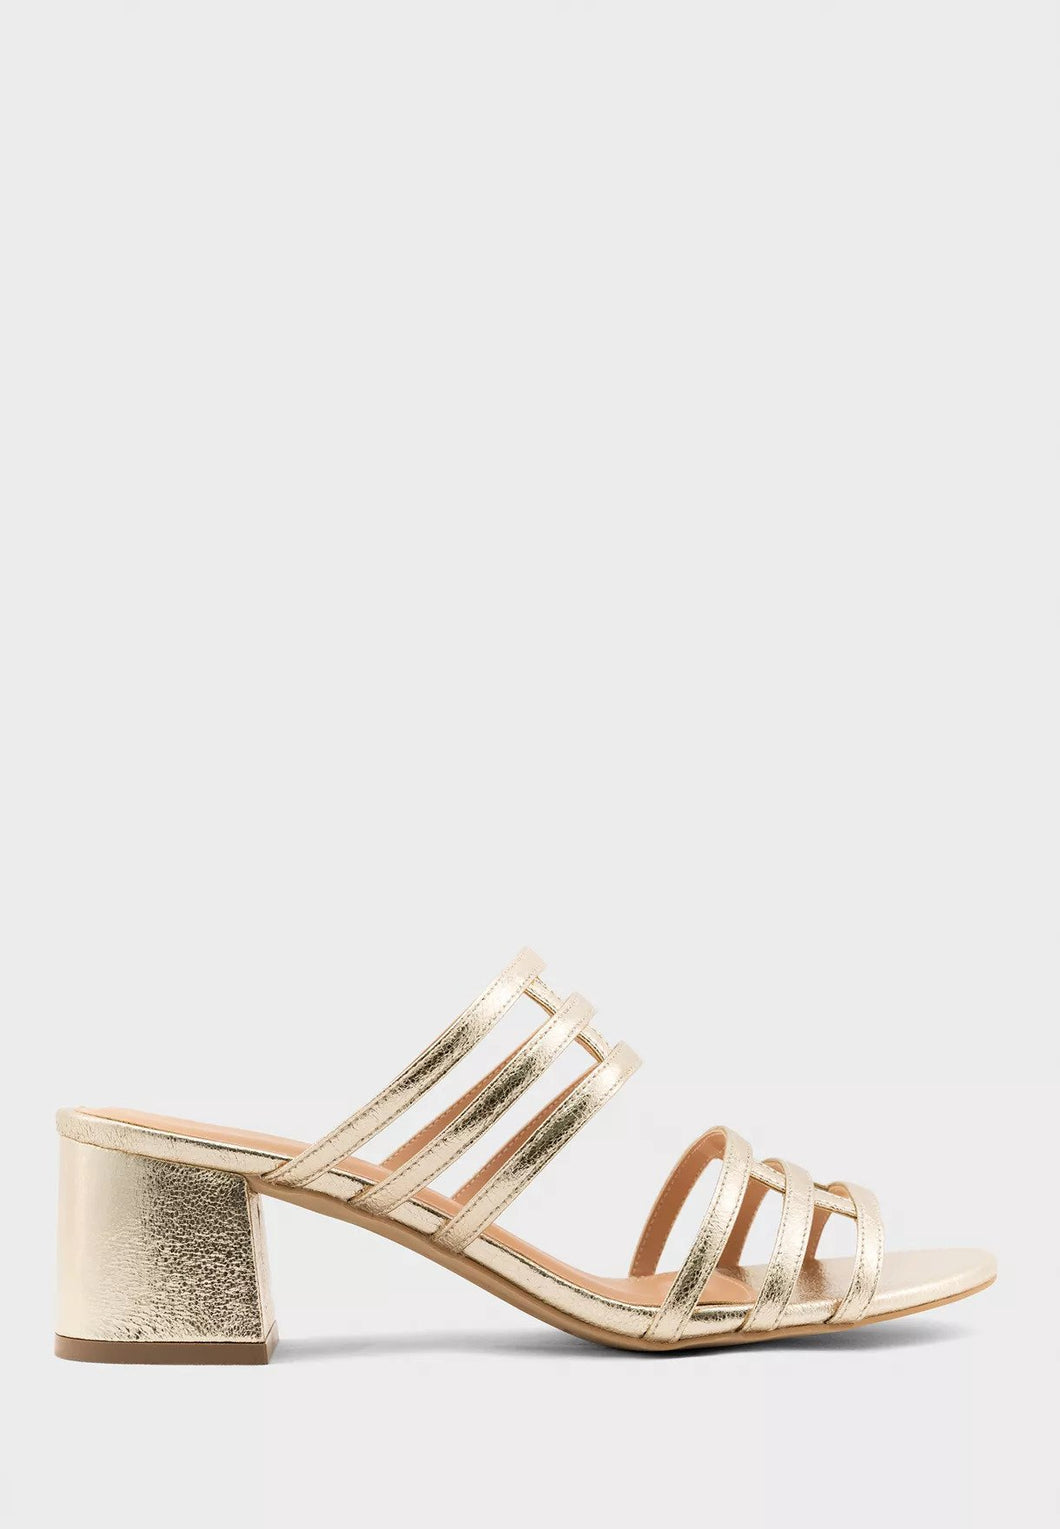 VINCCI Party Block Heel Sandal